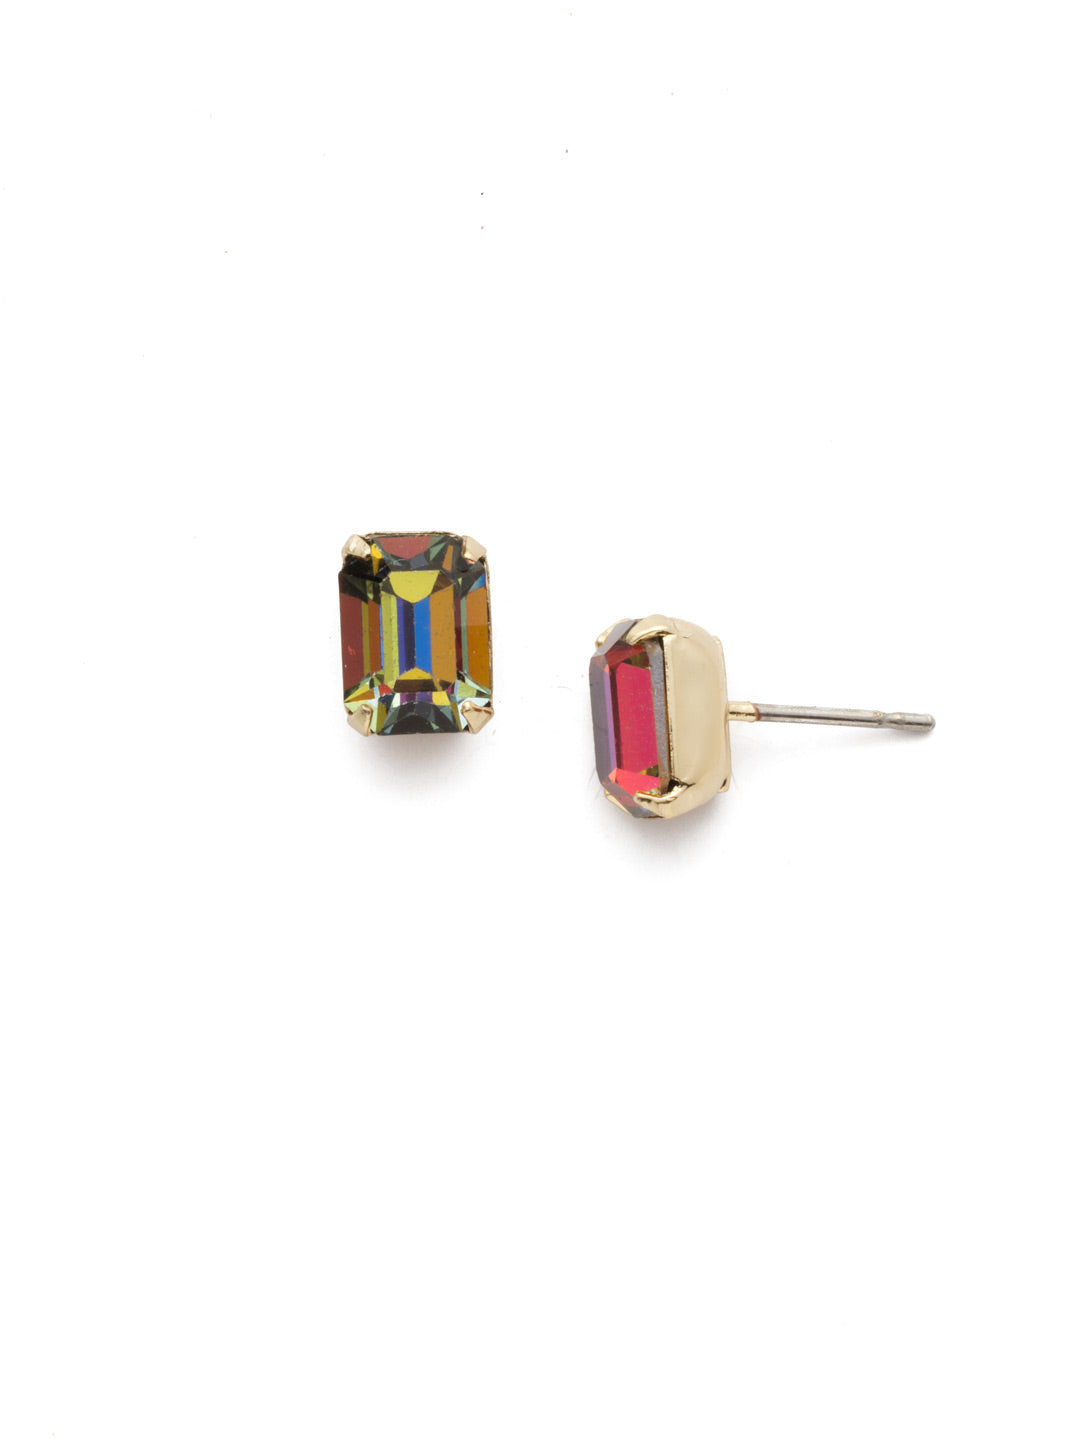 Mini Emerald Cut Stud Earrings - EBY42BGVO